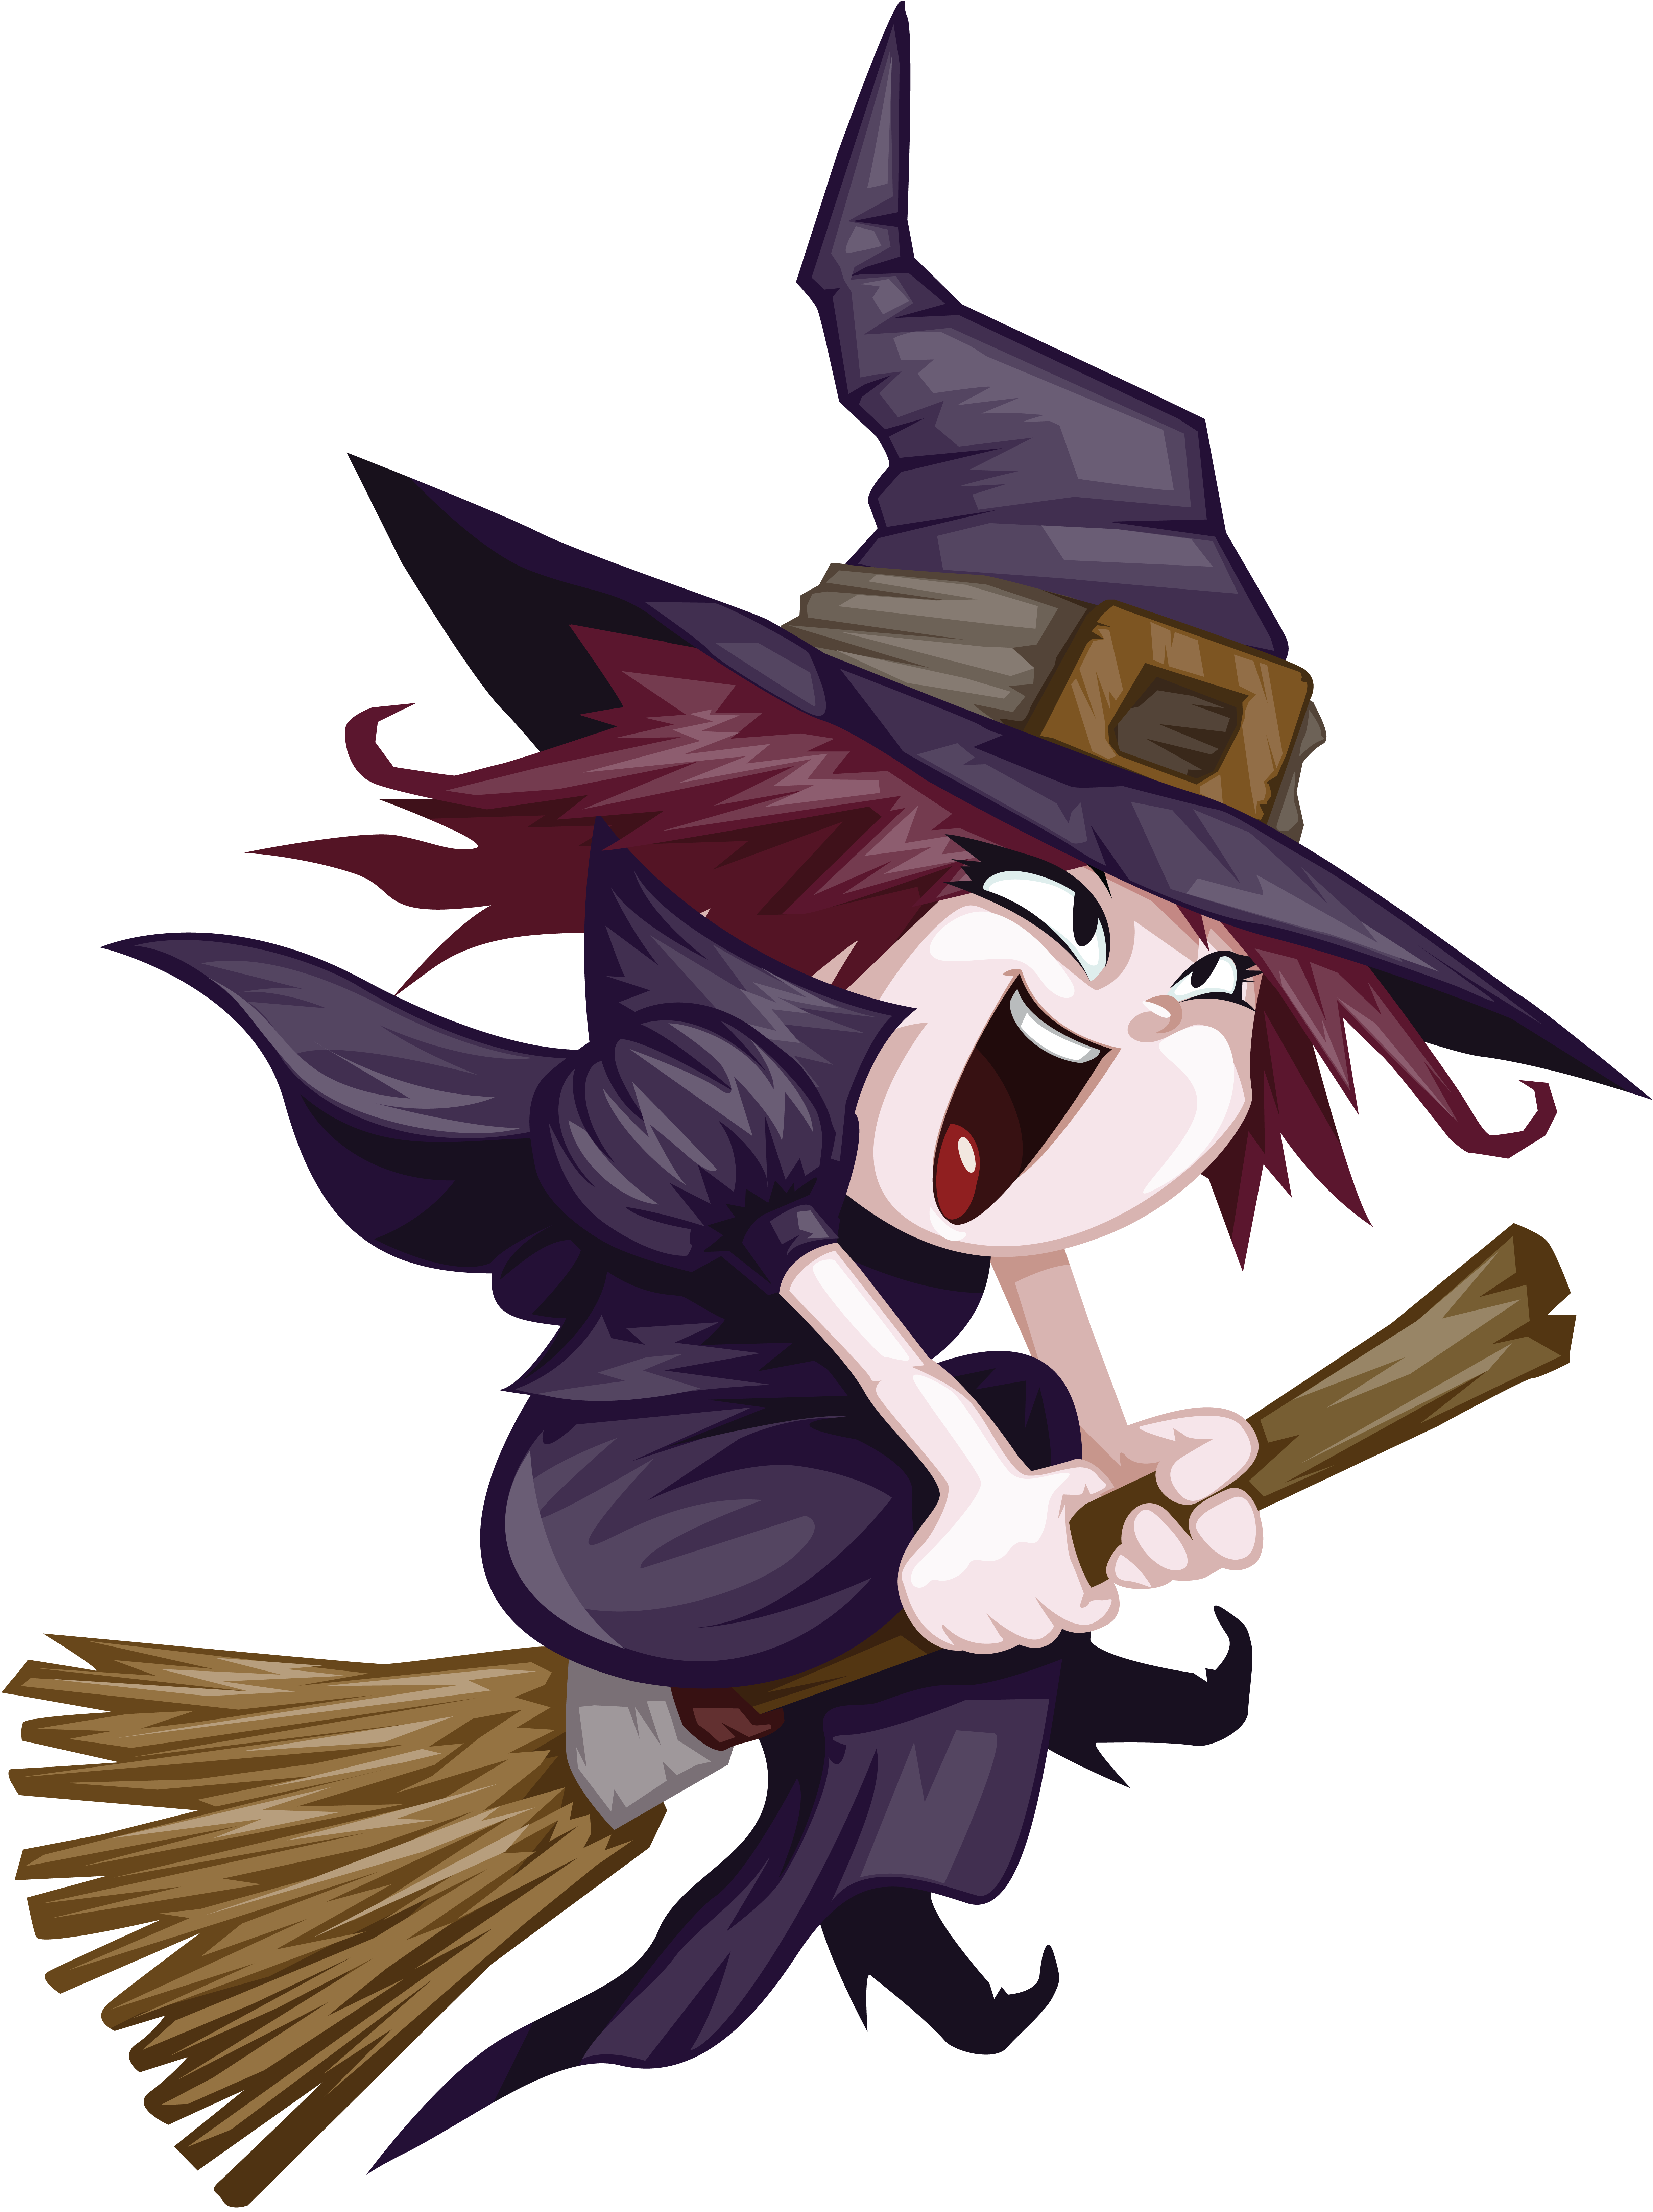 Black Halloween Witch Witch Clipart Halloween Witch Png Transparent Clipart Image And Psd File For Free Download In 2021 Halloween Flying Witch Witch Clipart Halloween Symbols